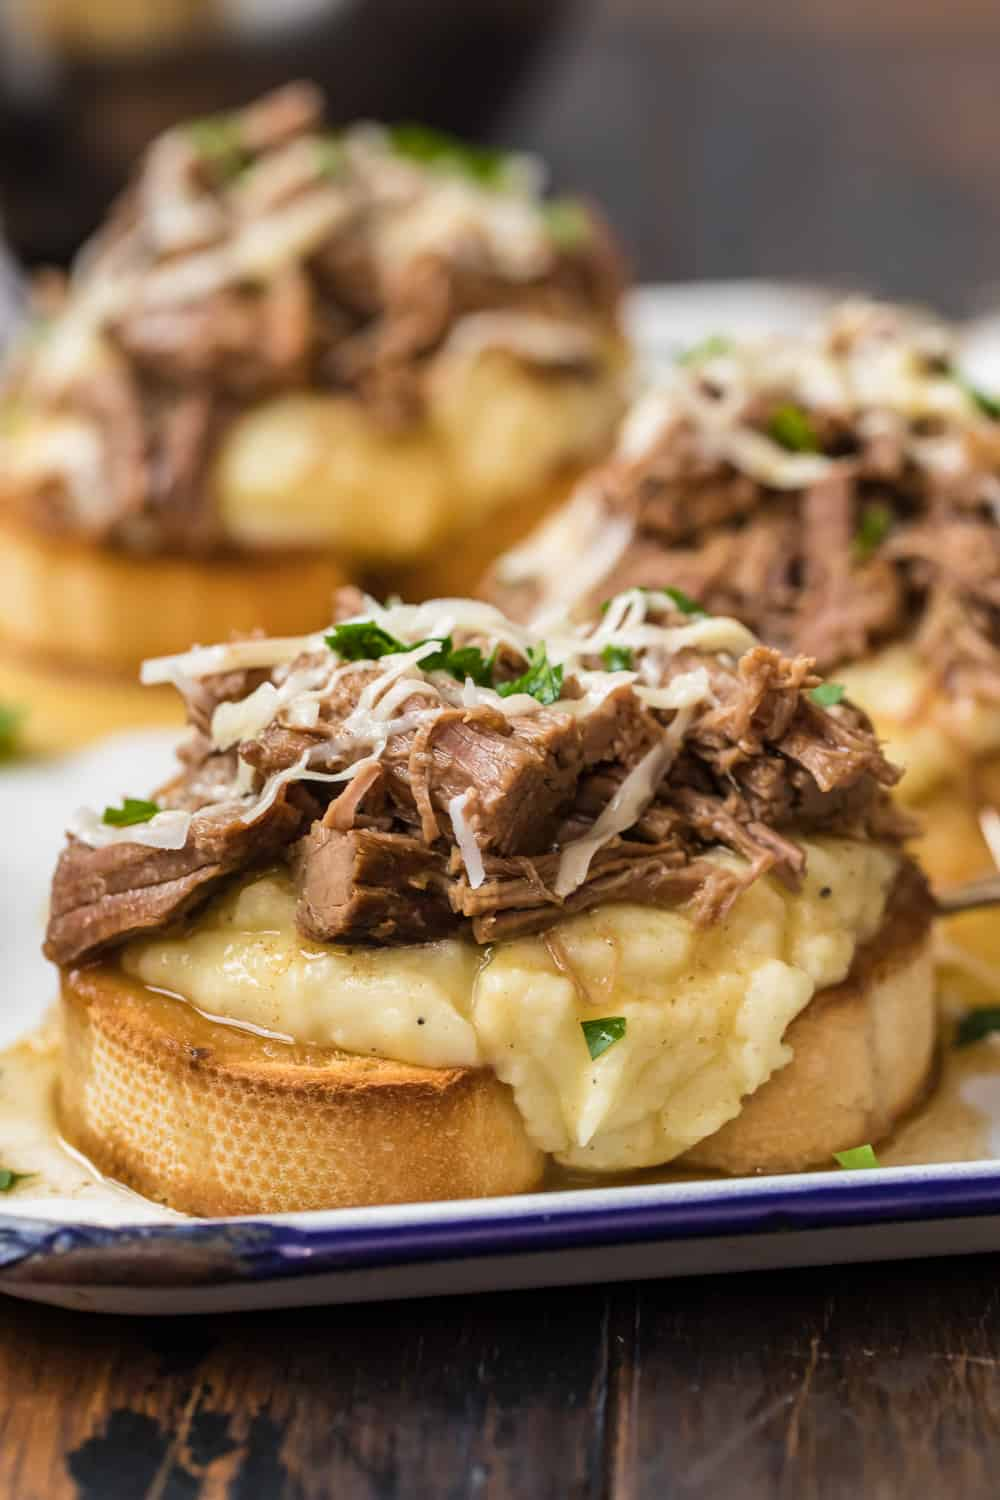 Open Faced Roast Beef Sandwich on a blue and white plate